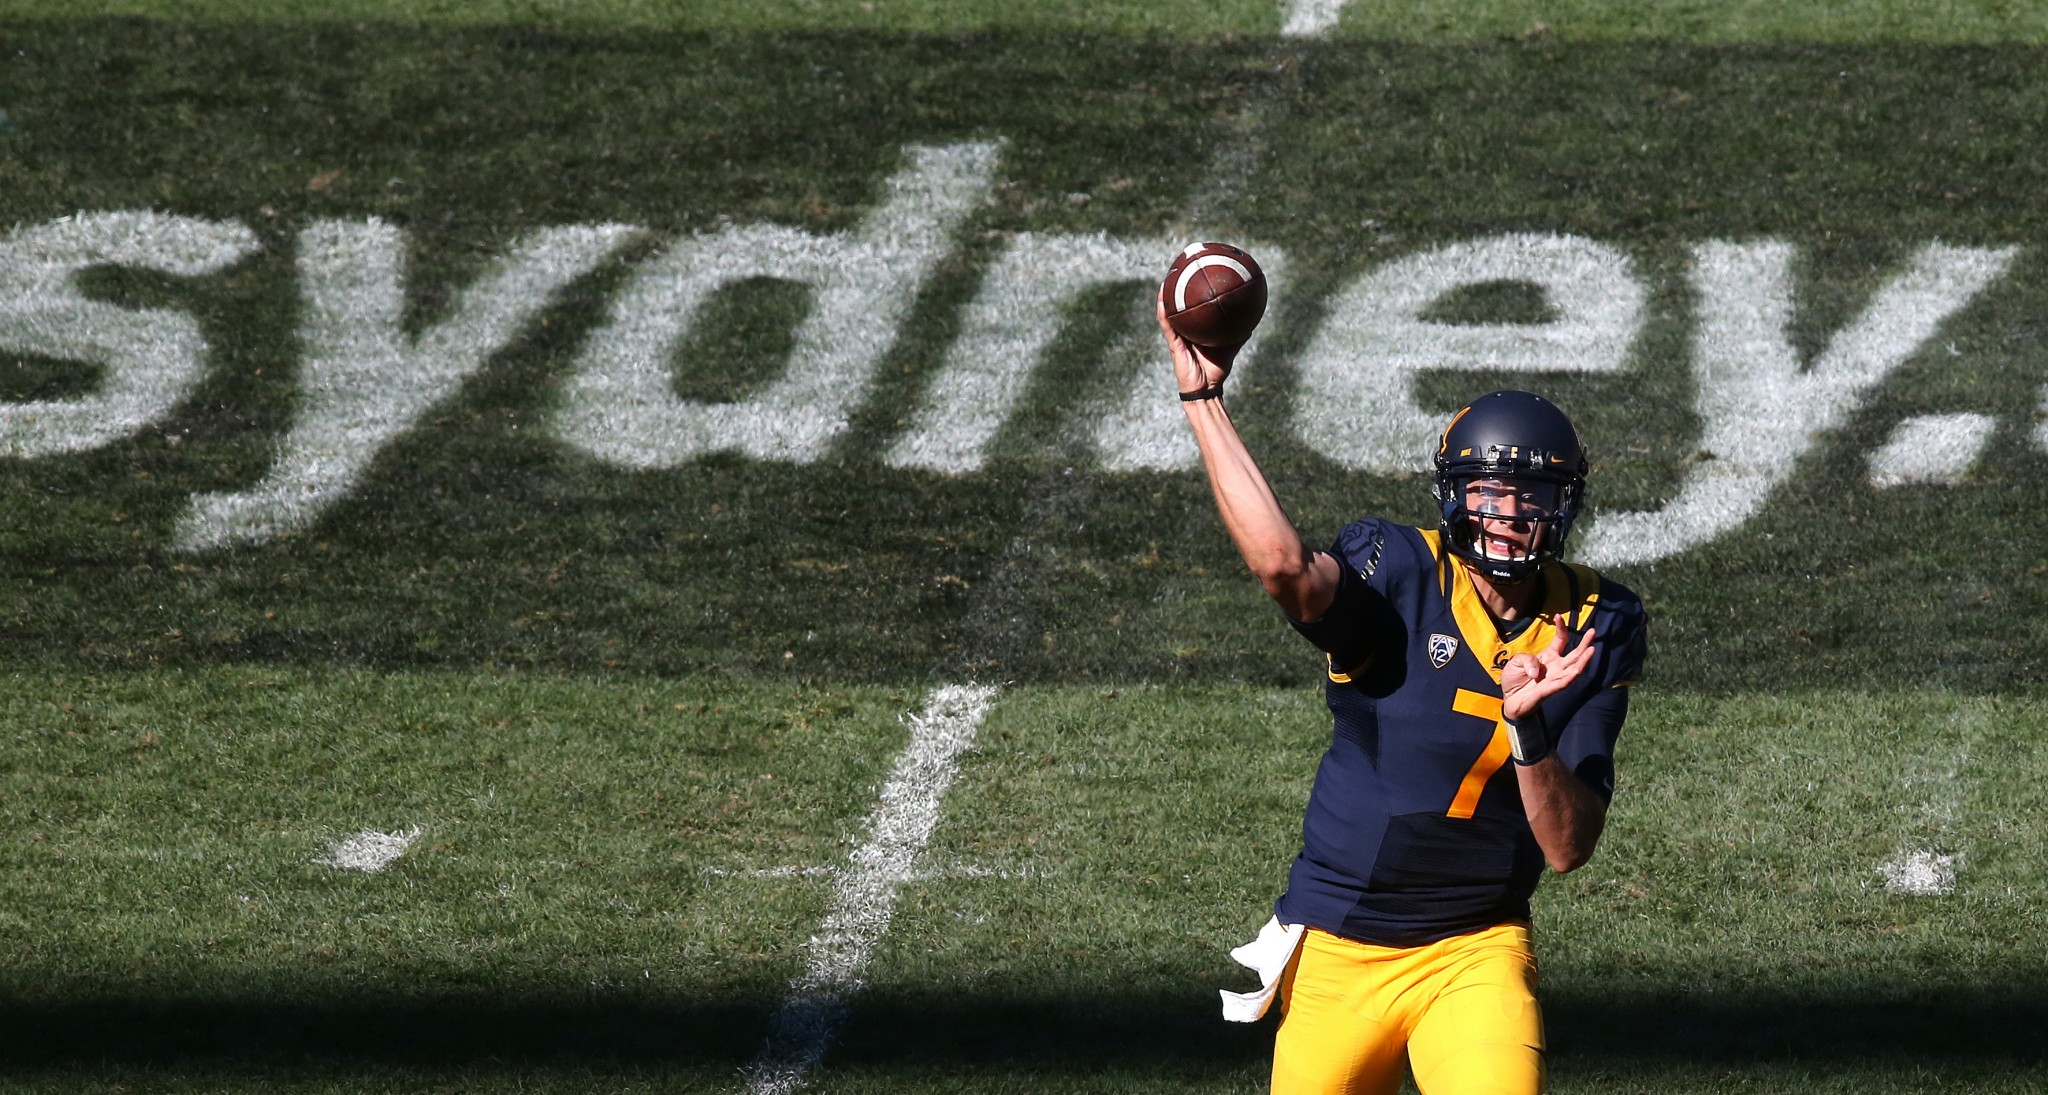 California Golden Bears' quarterback Davis Webb attempts a pass during the opening game of the U.S. college football season against the Hawaii Rainbow Warriors at Sydney's Olympic stadium in Sydney, Saturday, Aug. 27, 2016. (AP Photo/Rick Rycroft)